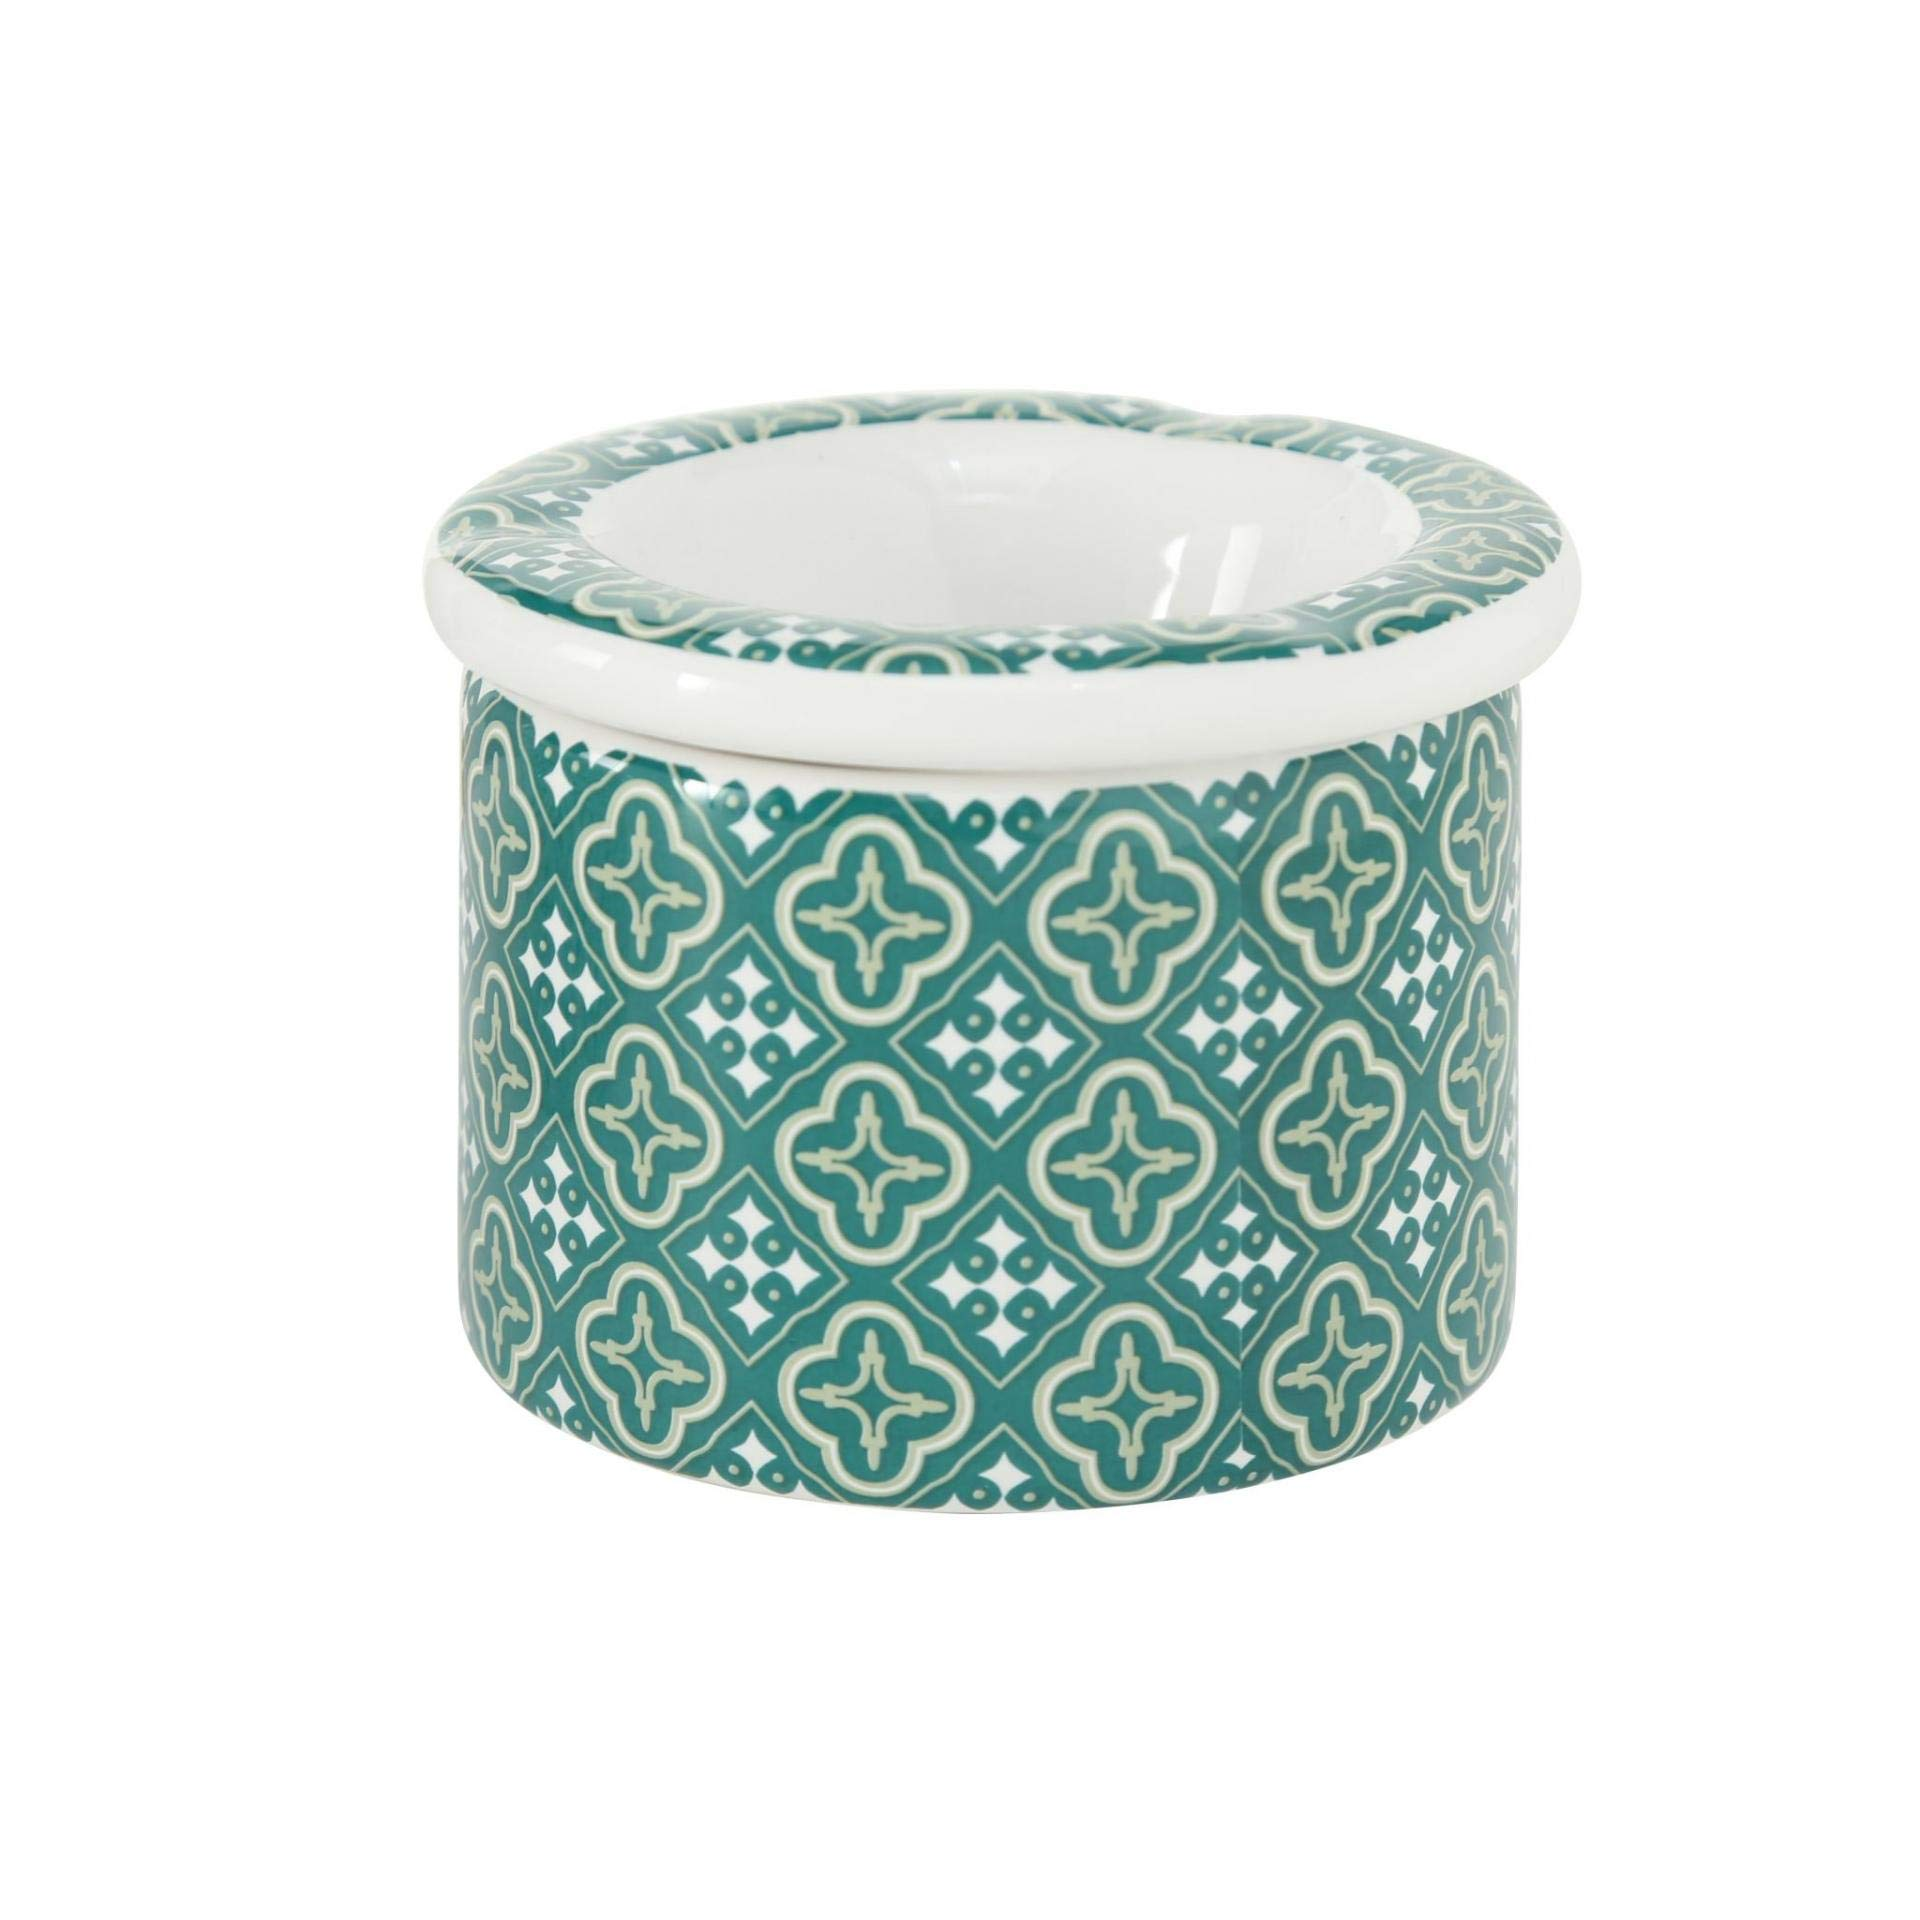 Home Collection Home Garden Terrace Deco Buy Online In South Africa At Desertcart